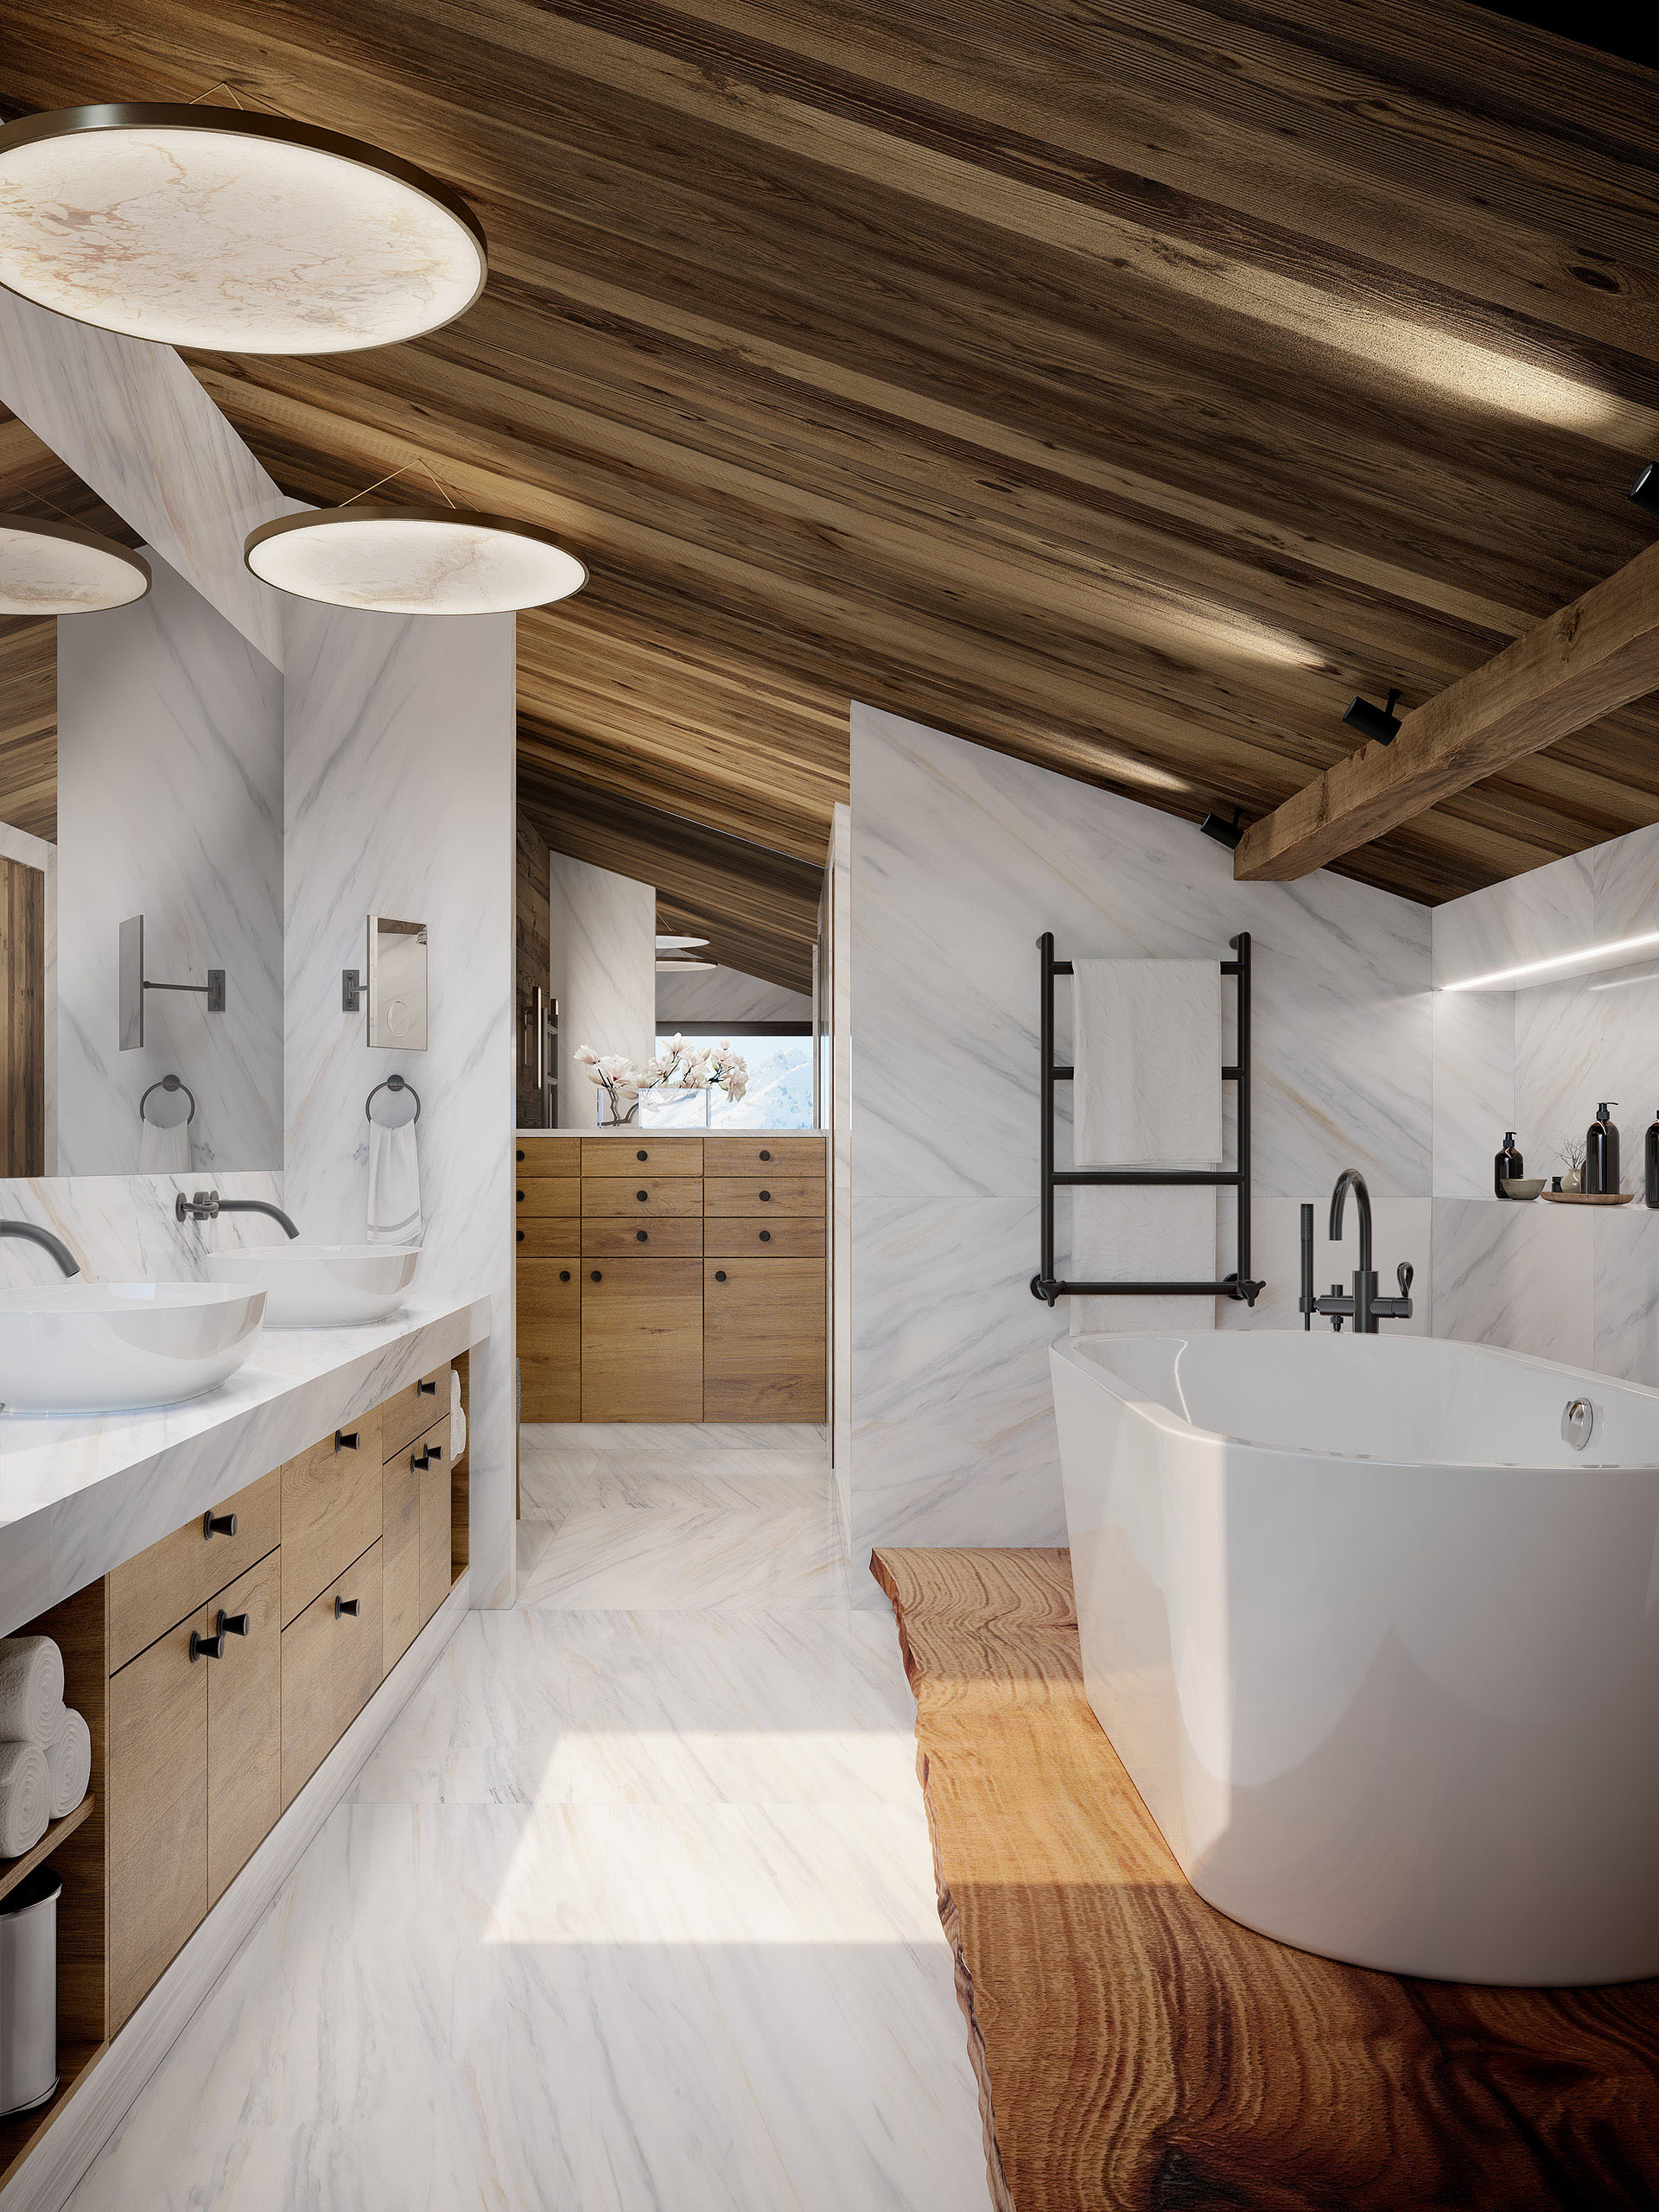 3D computer generated image of a marble bathroom in a chalet